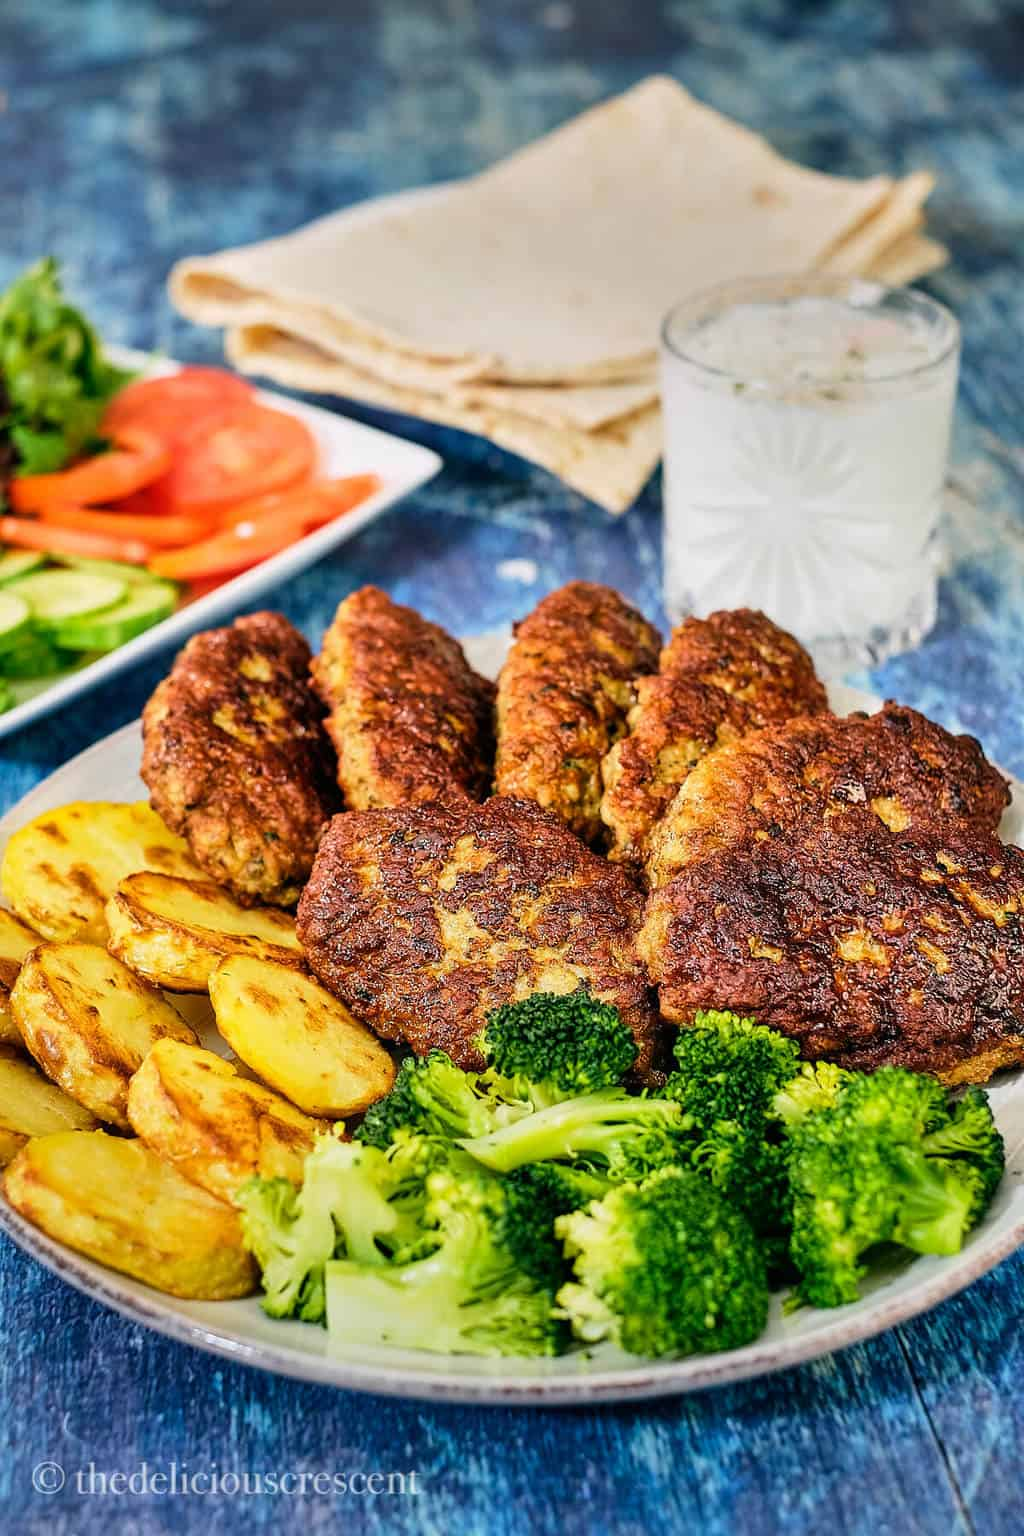 Persian kotlet served with a side of potatoes and broccoli.